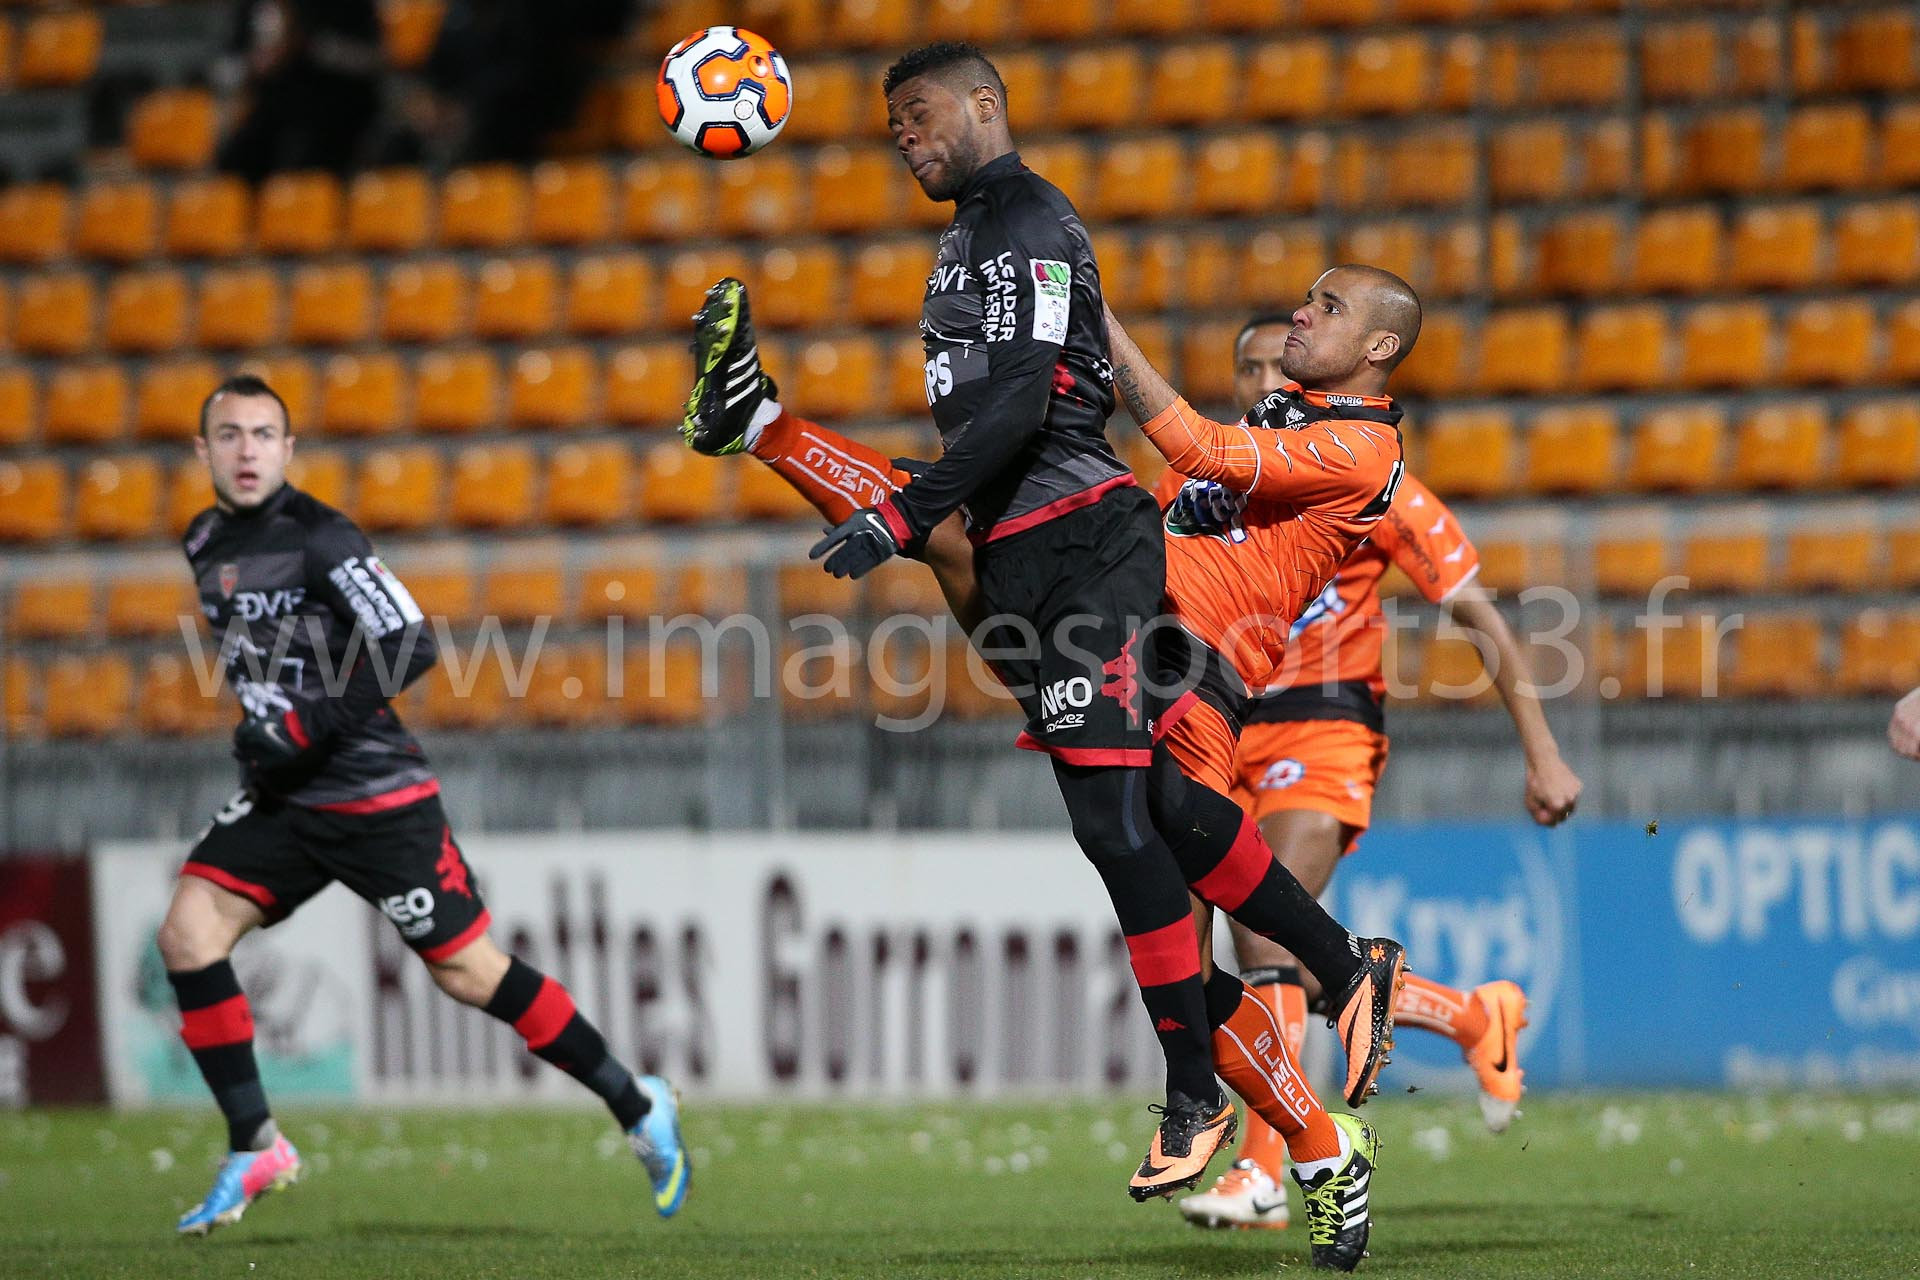 William REMY (Dijon FCO) Gary COULIBALY (Stade Lavallois)